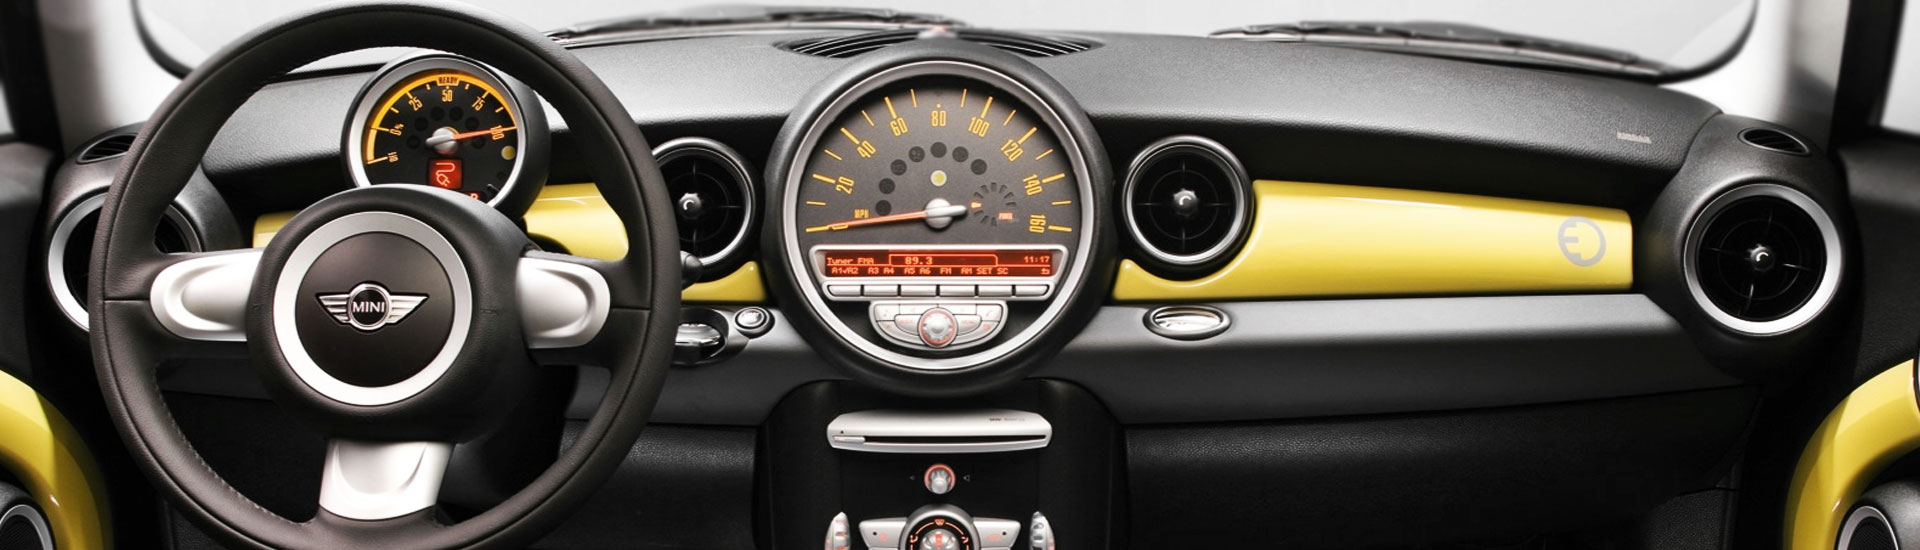 2005 MINI Cooper Custom Dash Kits